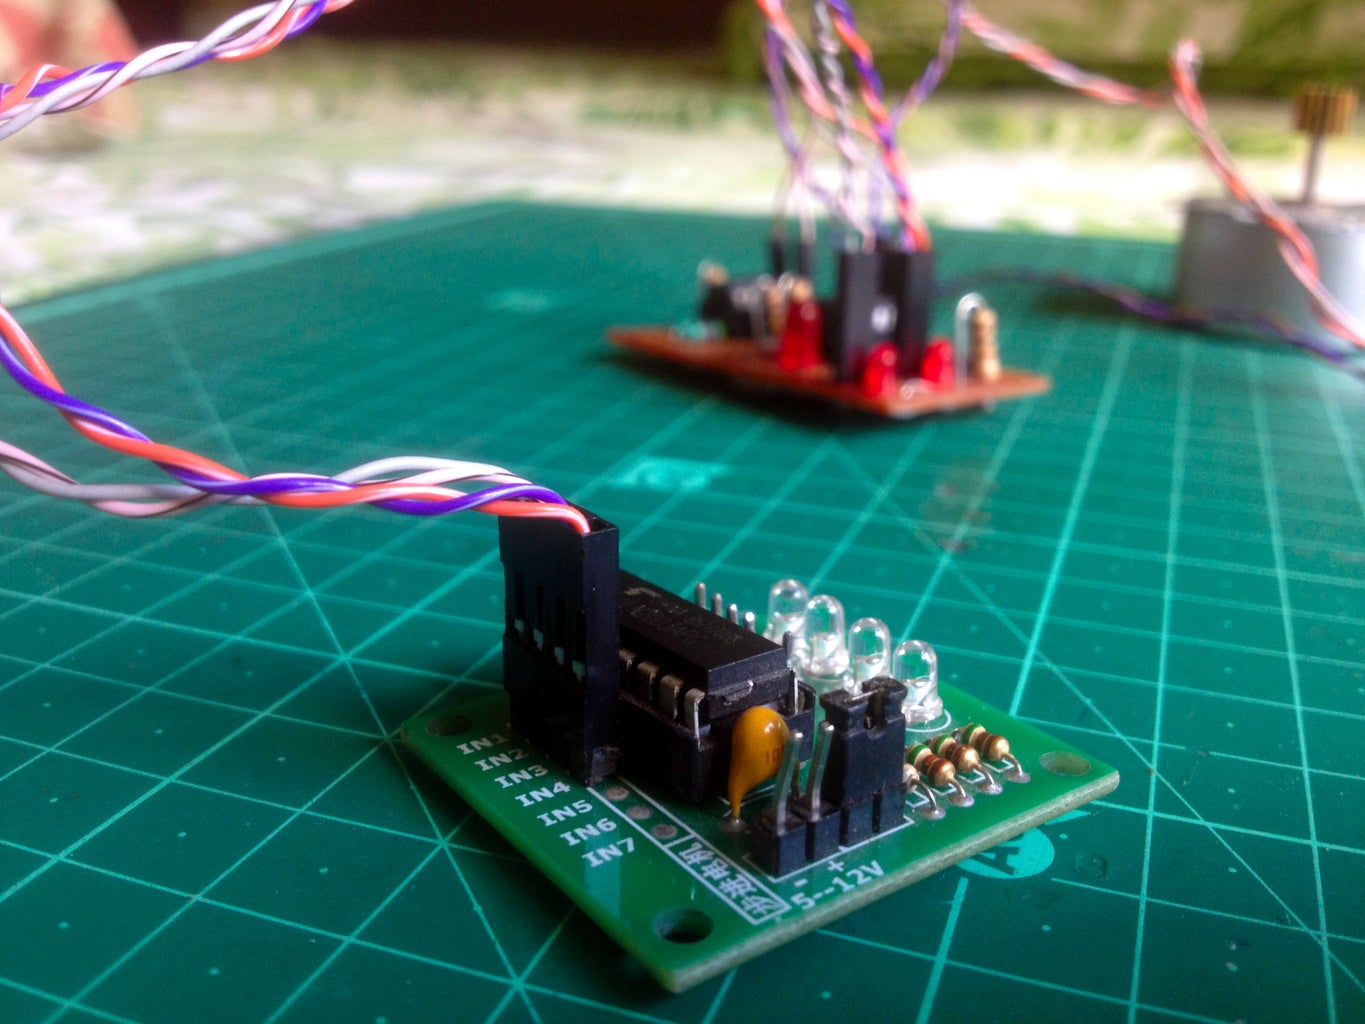 Connect the Stepper Motor Driver to the Amplifier Board